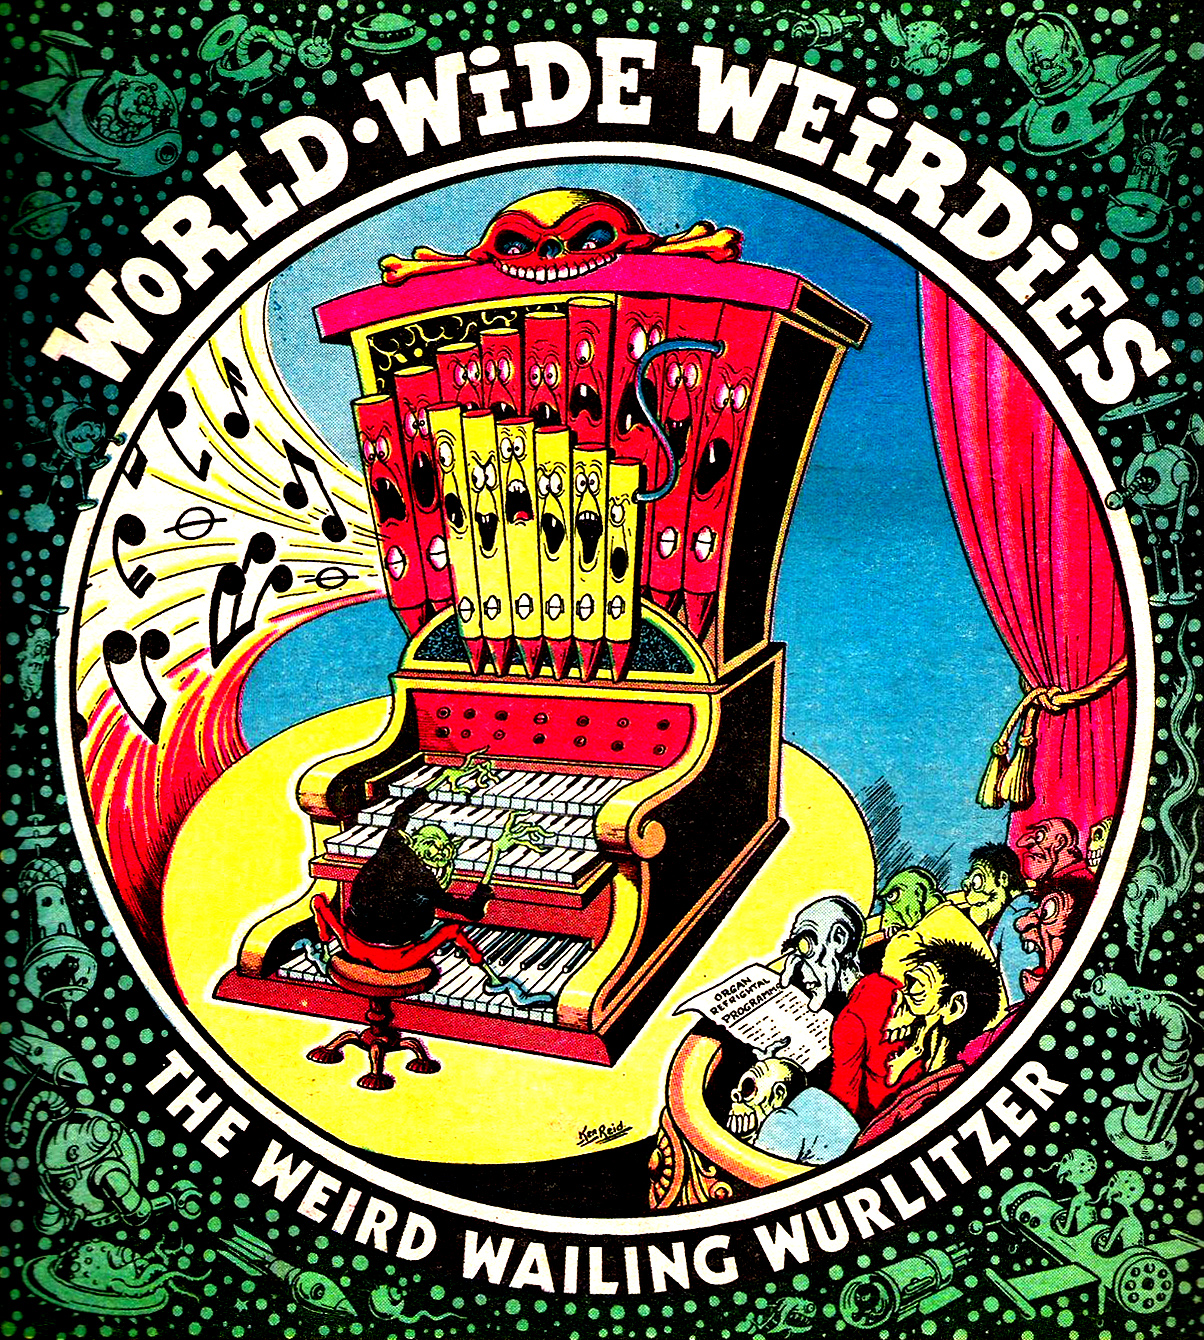 Ken Reid - World Wide Weirdies 27